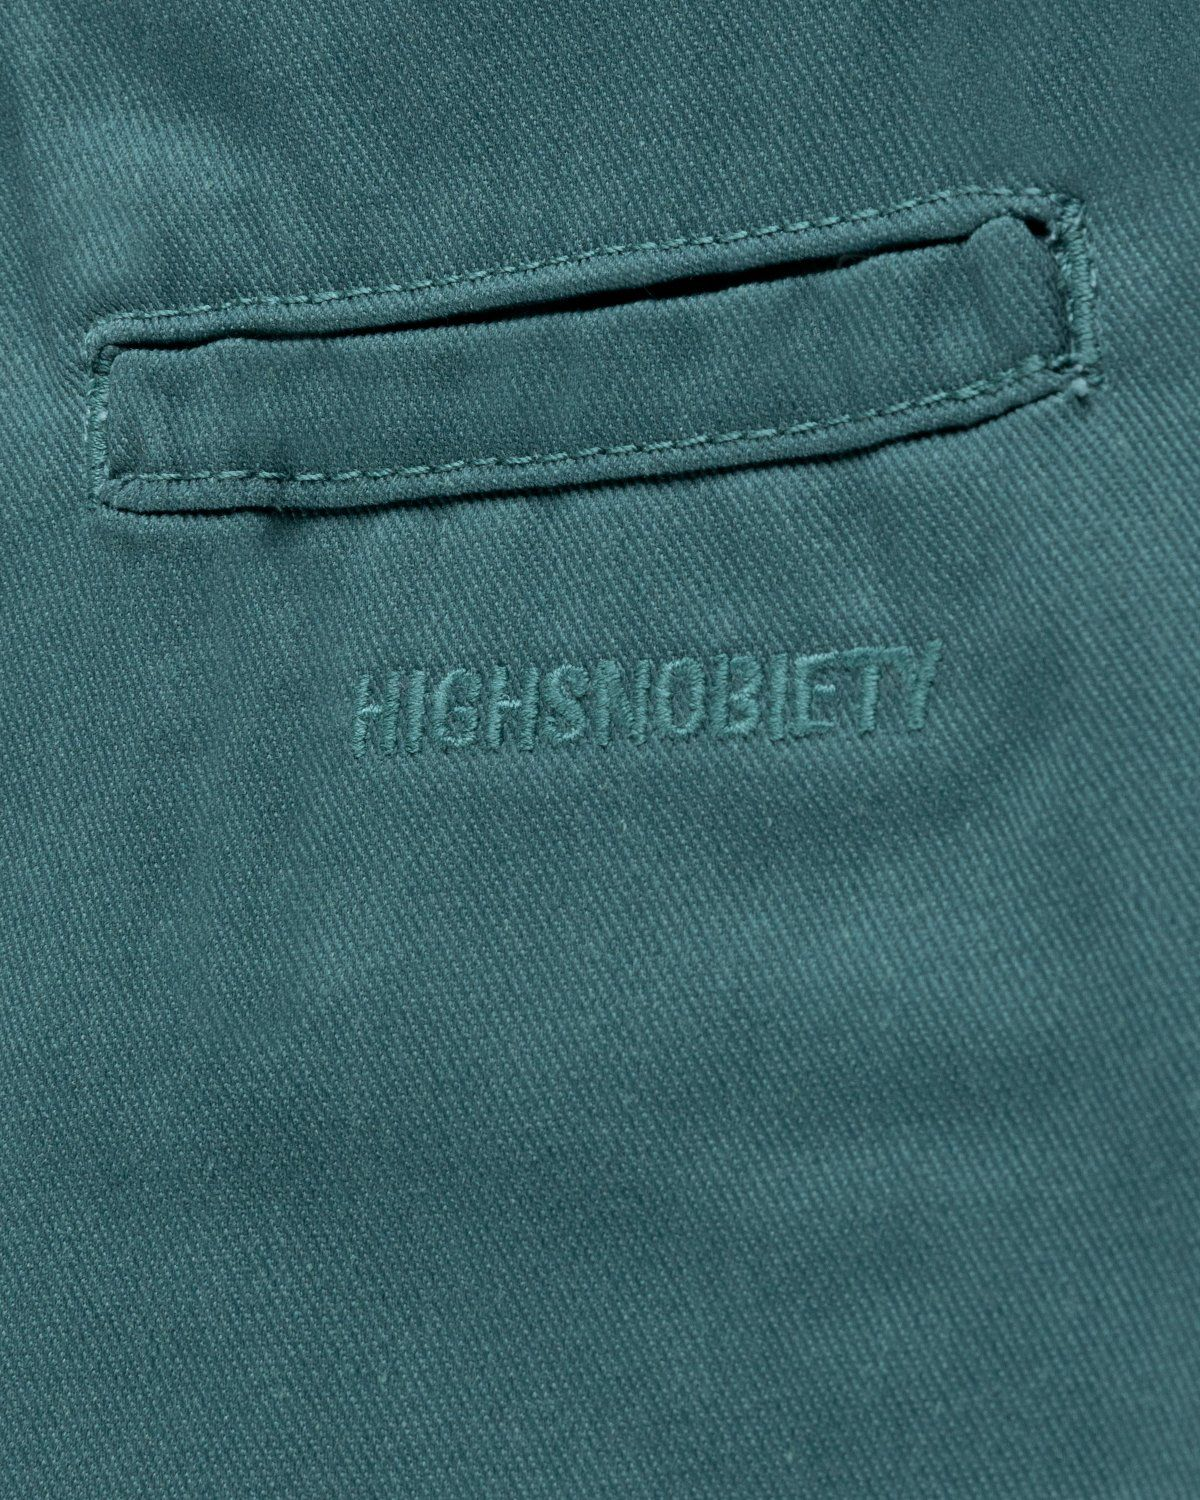 Highsnobiety x Dickies – Pleated Work Pants Lincoln Green - Image 4